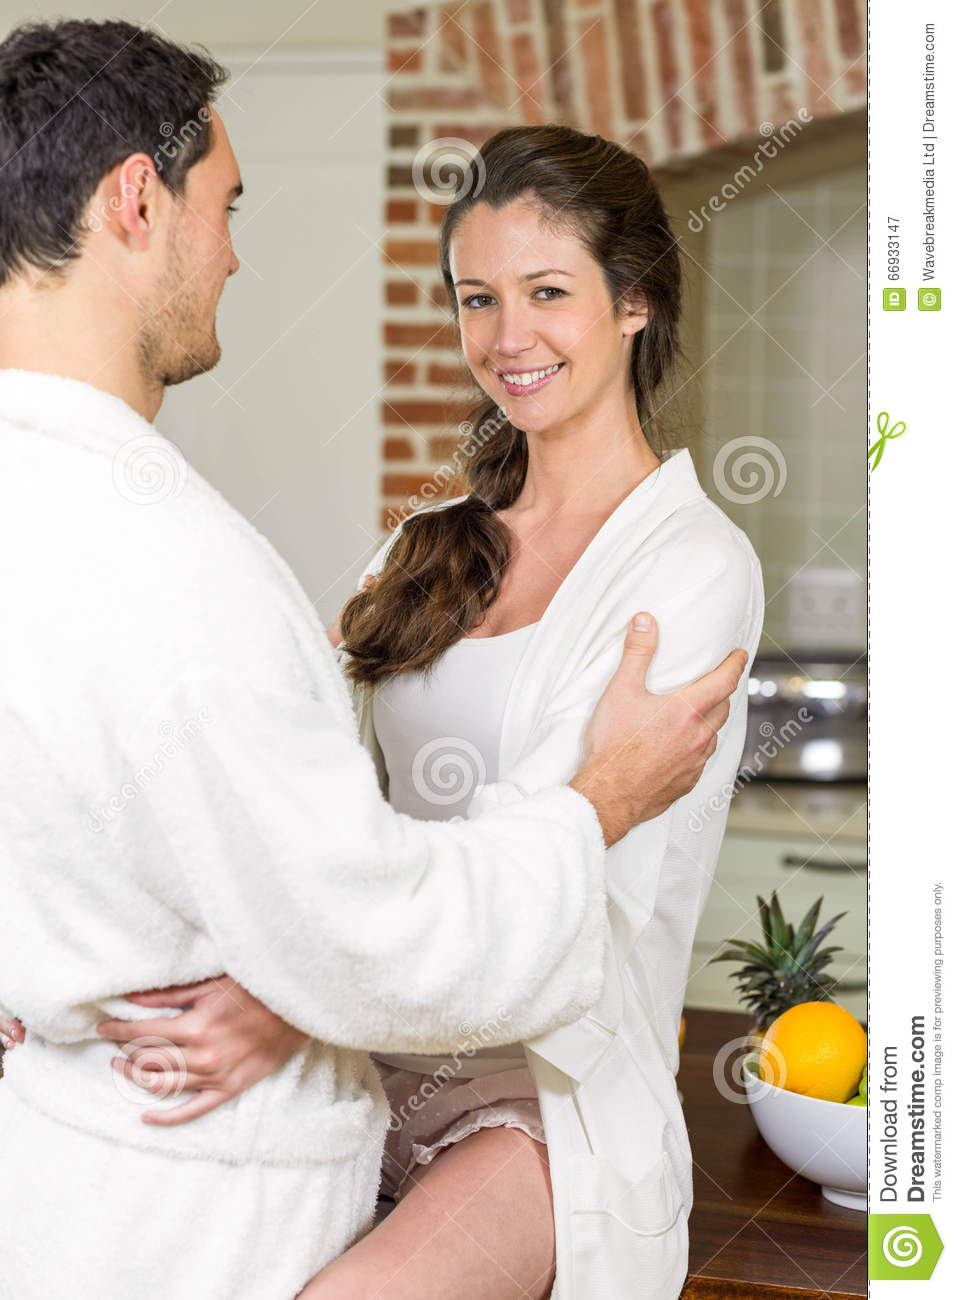 Young Couple In Bathrobe Cuddling Each Other Stock Image - Image of ...